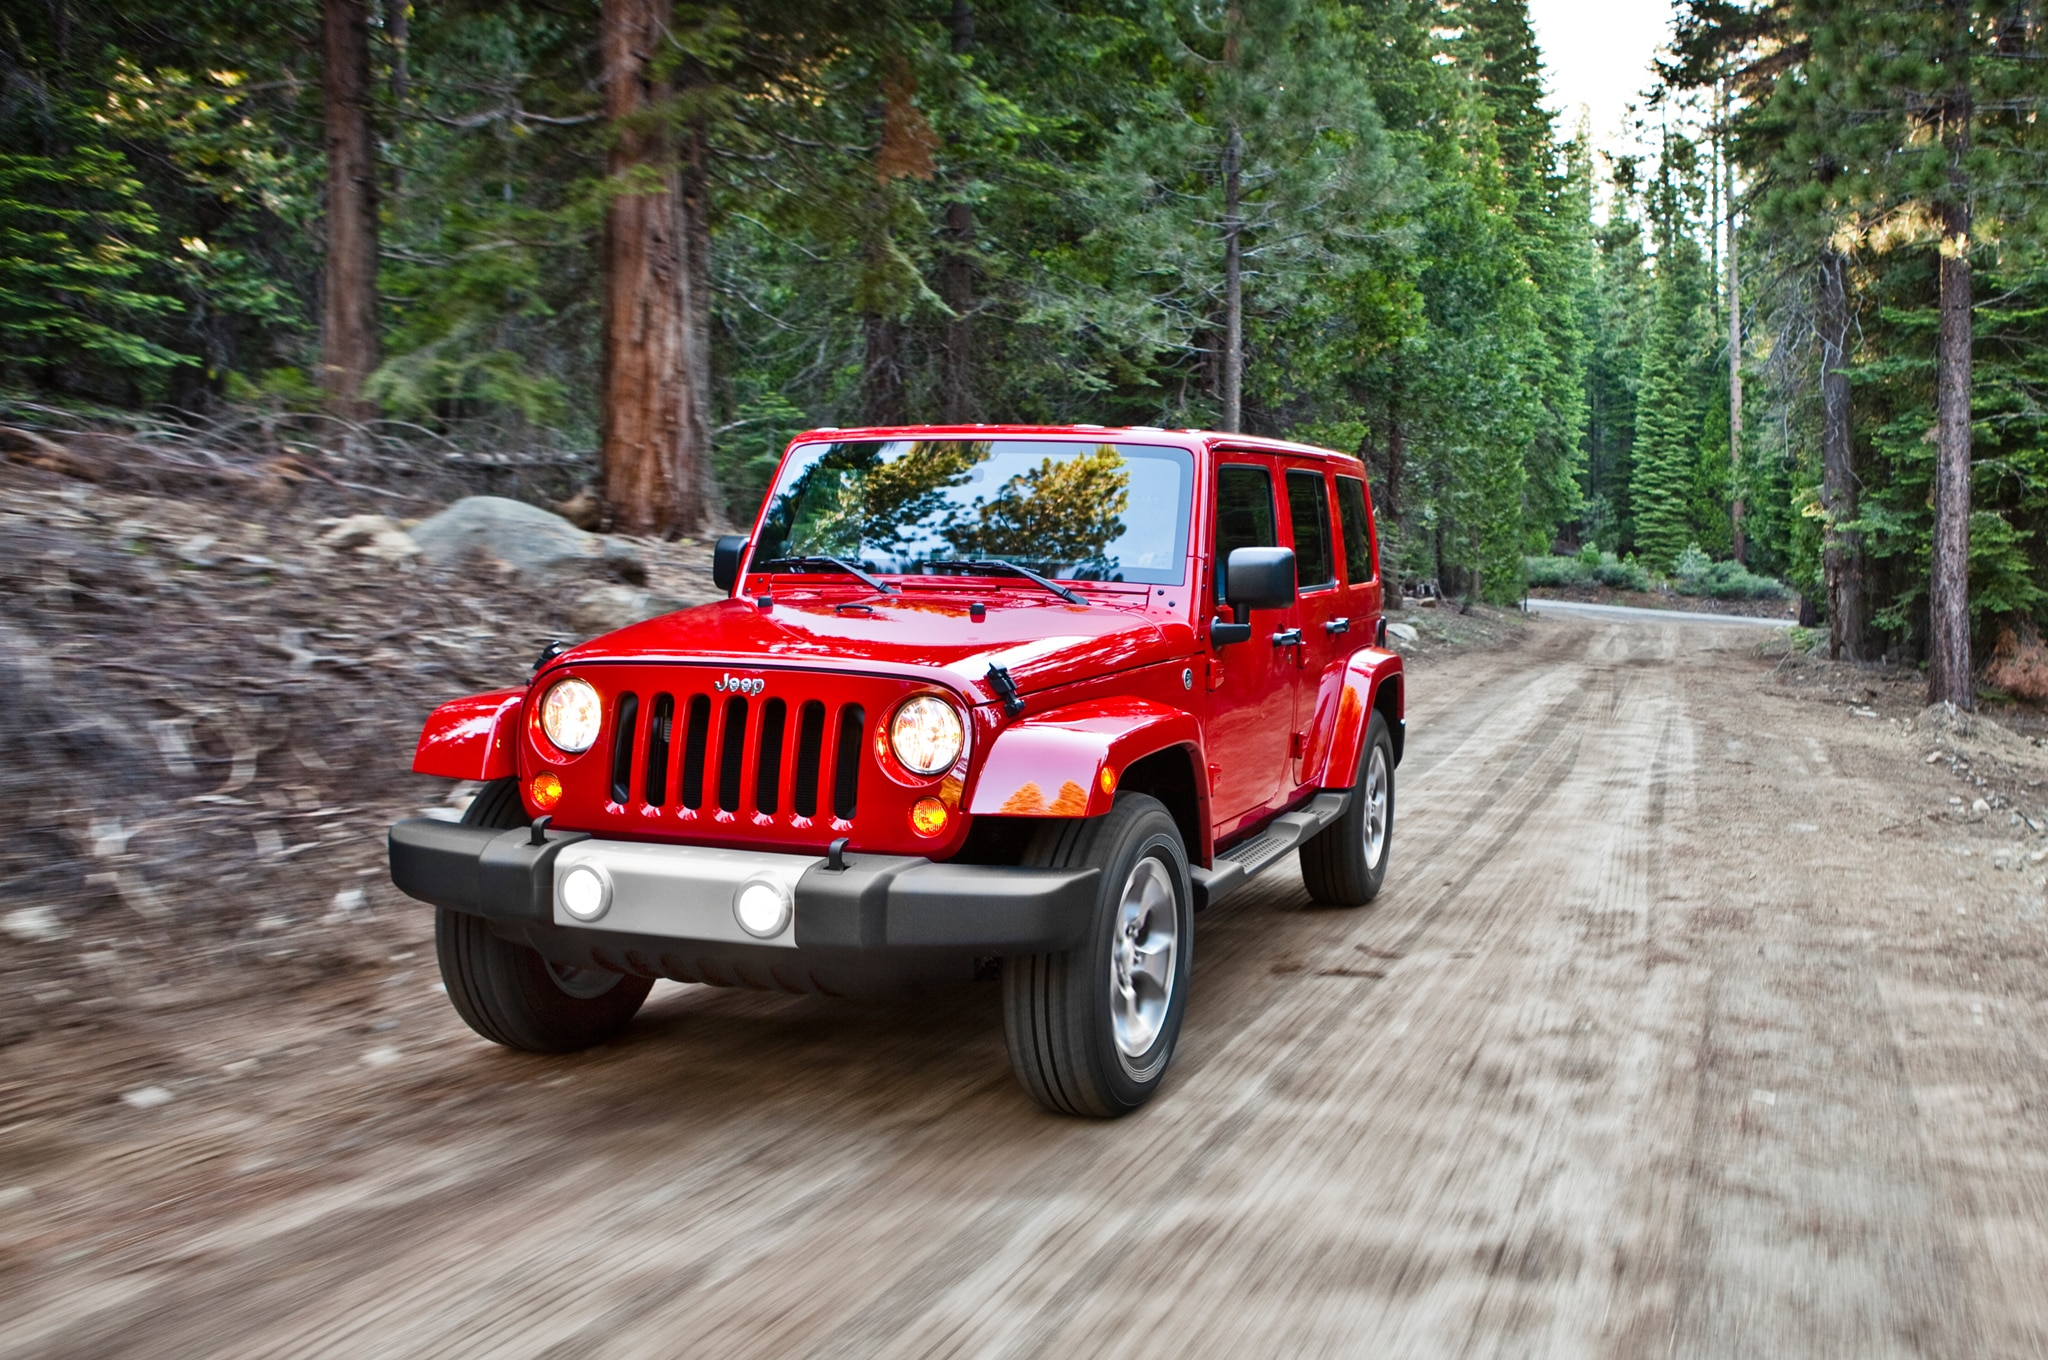 2015 Jee Wrangler Unlimited Sahara Front Three Quarter In Motion